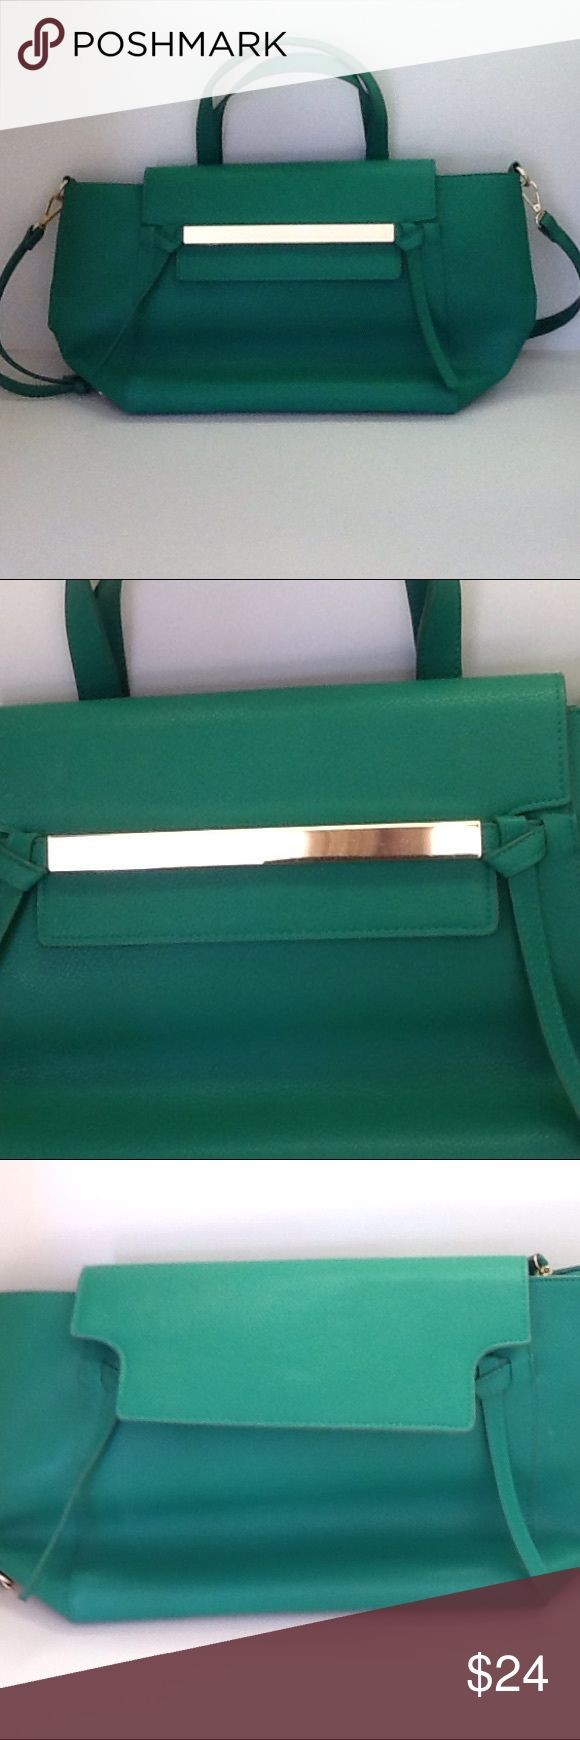 """JustFab Kelly Green Shoulder Bag Excellent condition detachable shoulder strap bag.  Drop is 17"""" -  22"""" with buckle adjustment. Handle drop is 6"""". Bright gold hardware. 8"""" fold-over flap in front. Behind is 6"""" open pocket. 6"""" decorative strips at ends of gold bar.  15"""" zippered closure with pull tab. Inside 7"""" zippered pocket and open pocket on other side. JustFab Bags Shoulder Bags"""